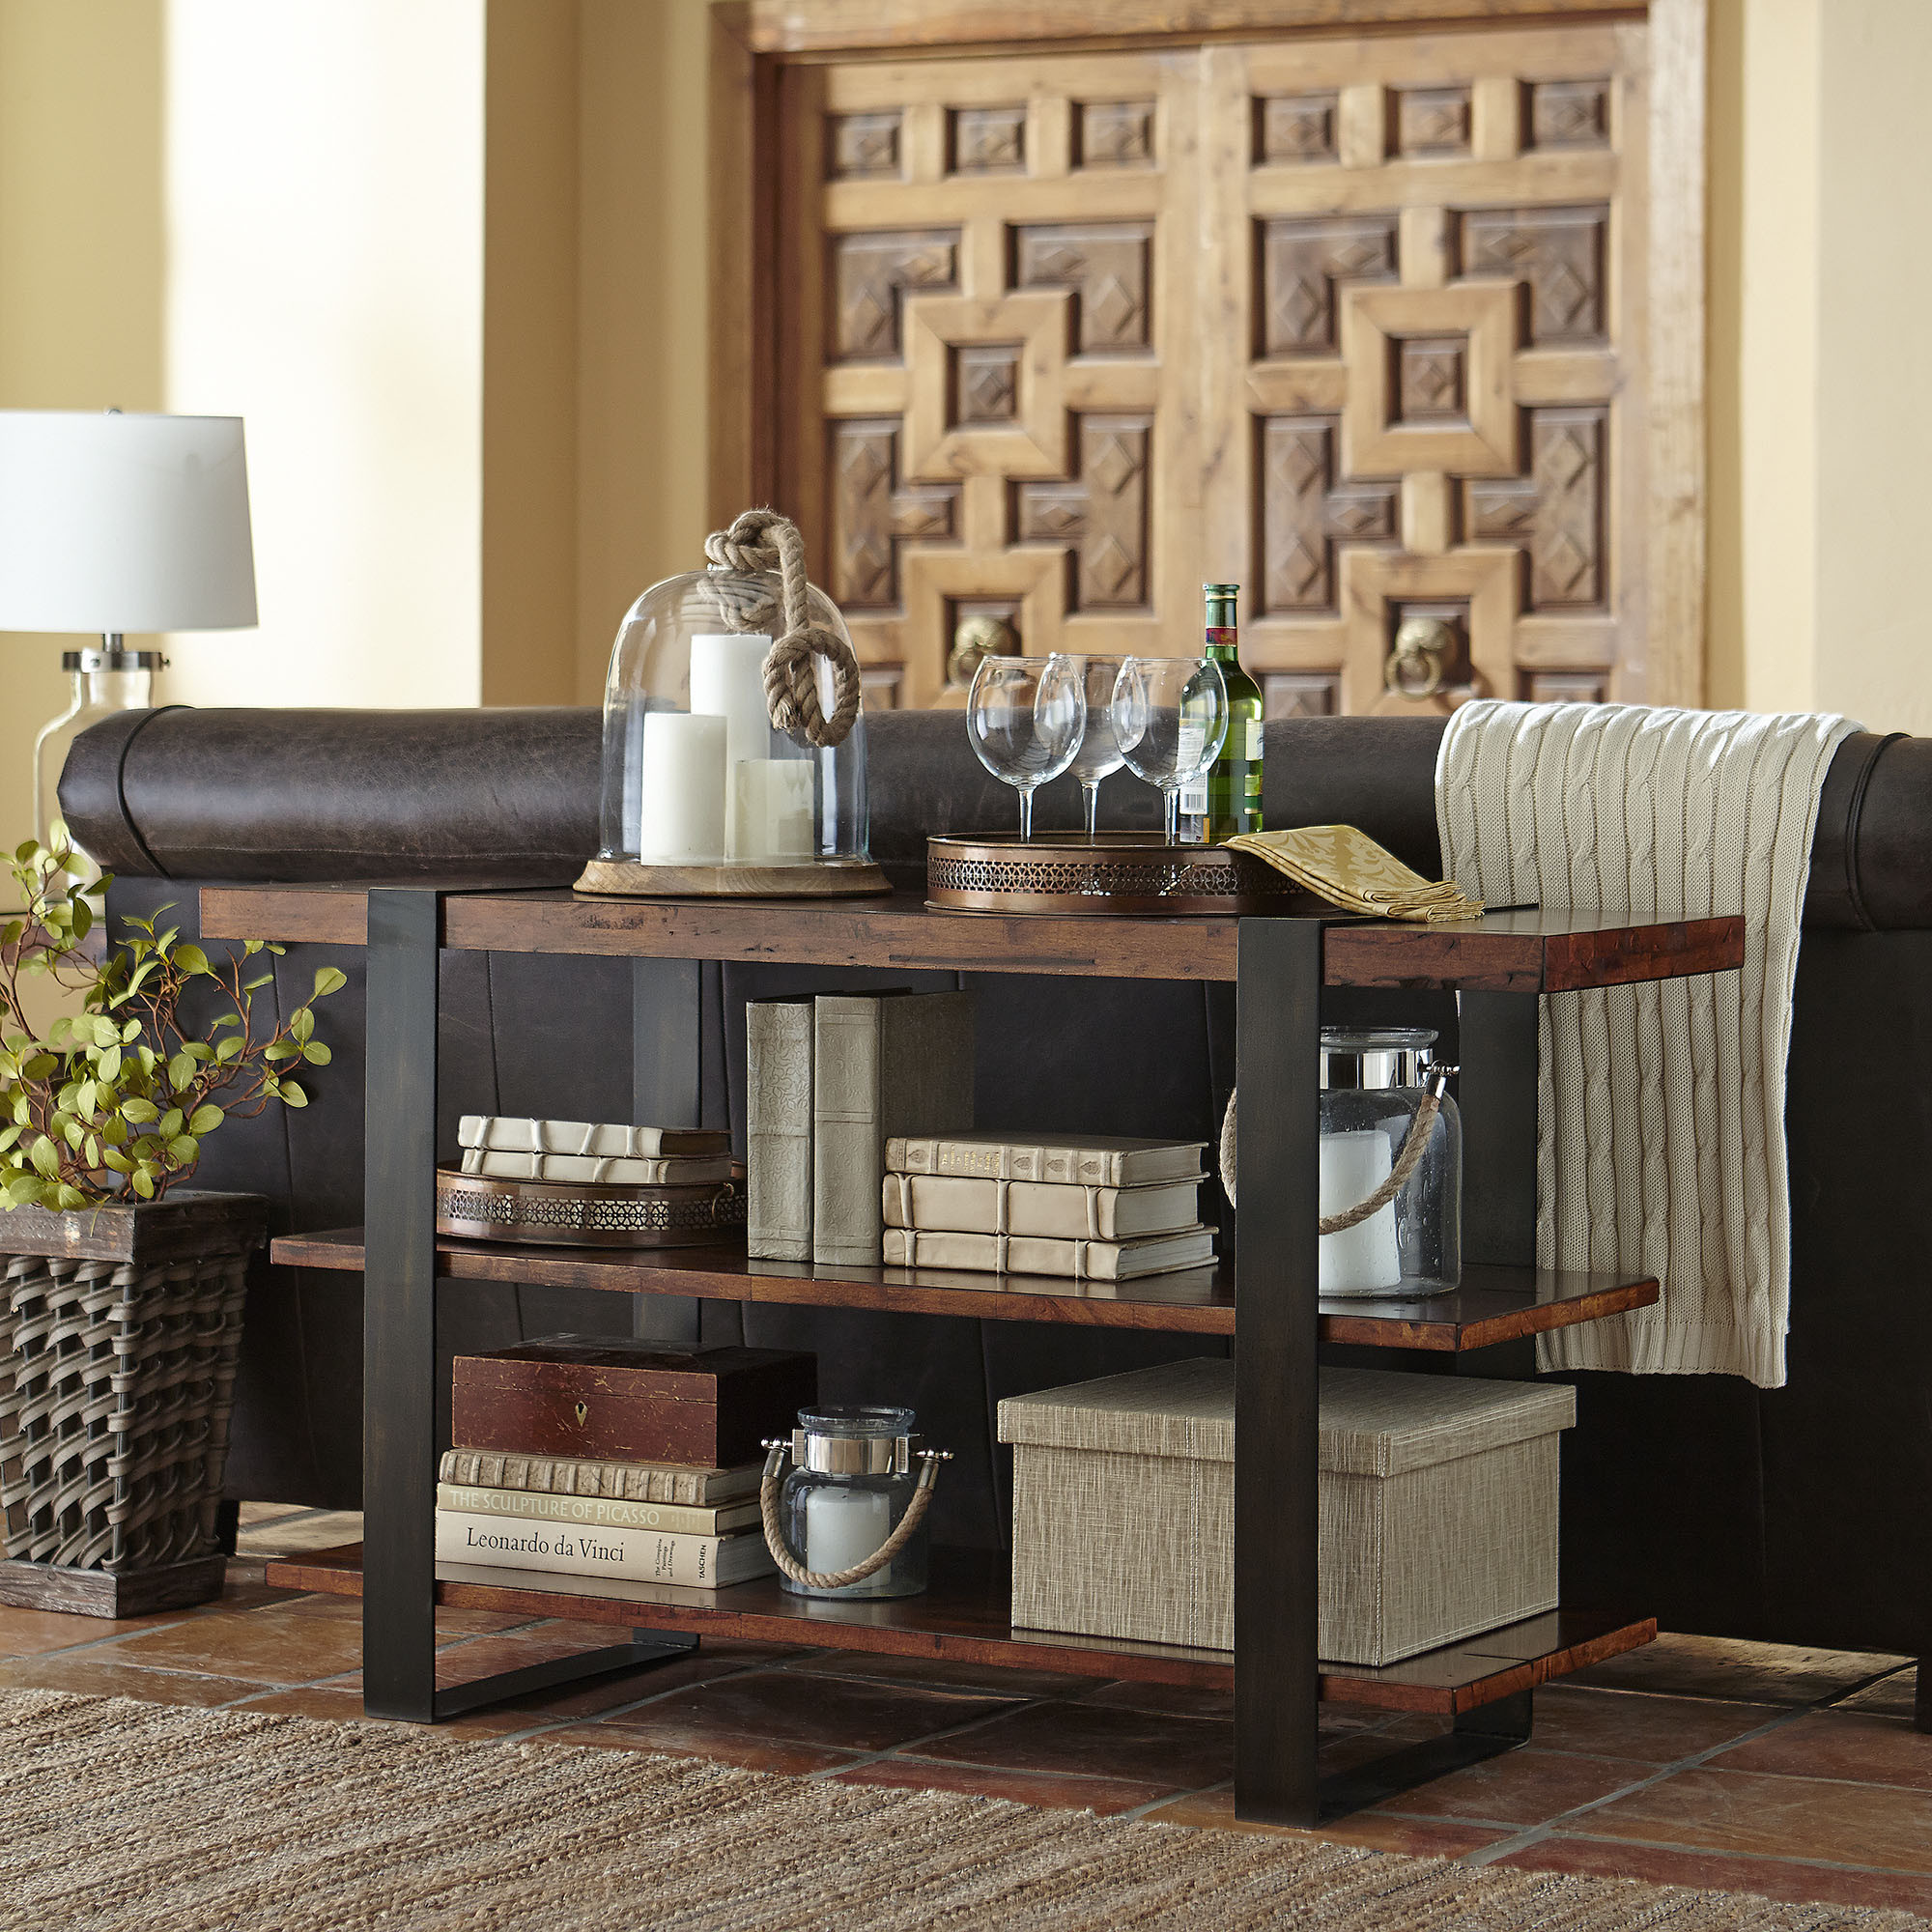 console table behind sofa decor ideas contemporary small sectional sofas pottery barn griffin reclaimed wood media | ...